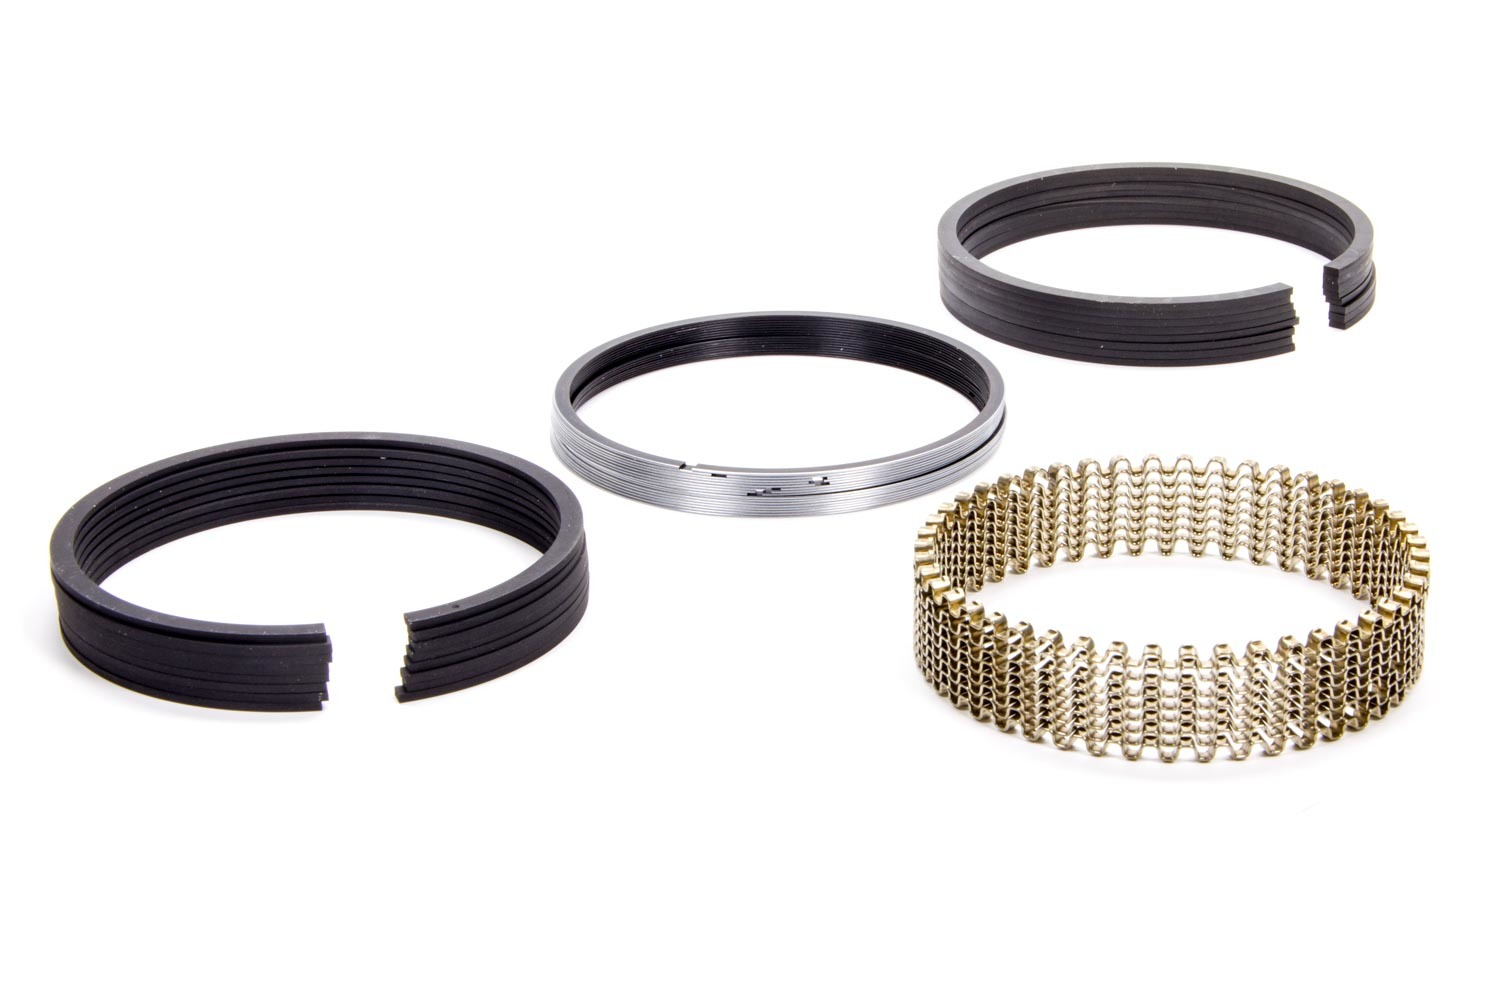 Hastings 139030 Piston Rings, 4.030 in Bore, 5/64 x 5/64 x 3/16 in Thick, Standard Tension, Iron, 8 Cylinder, Kit